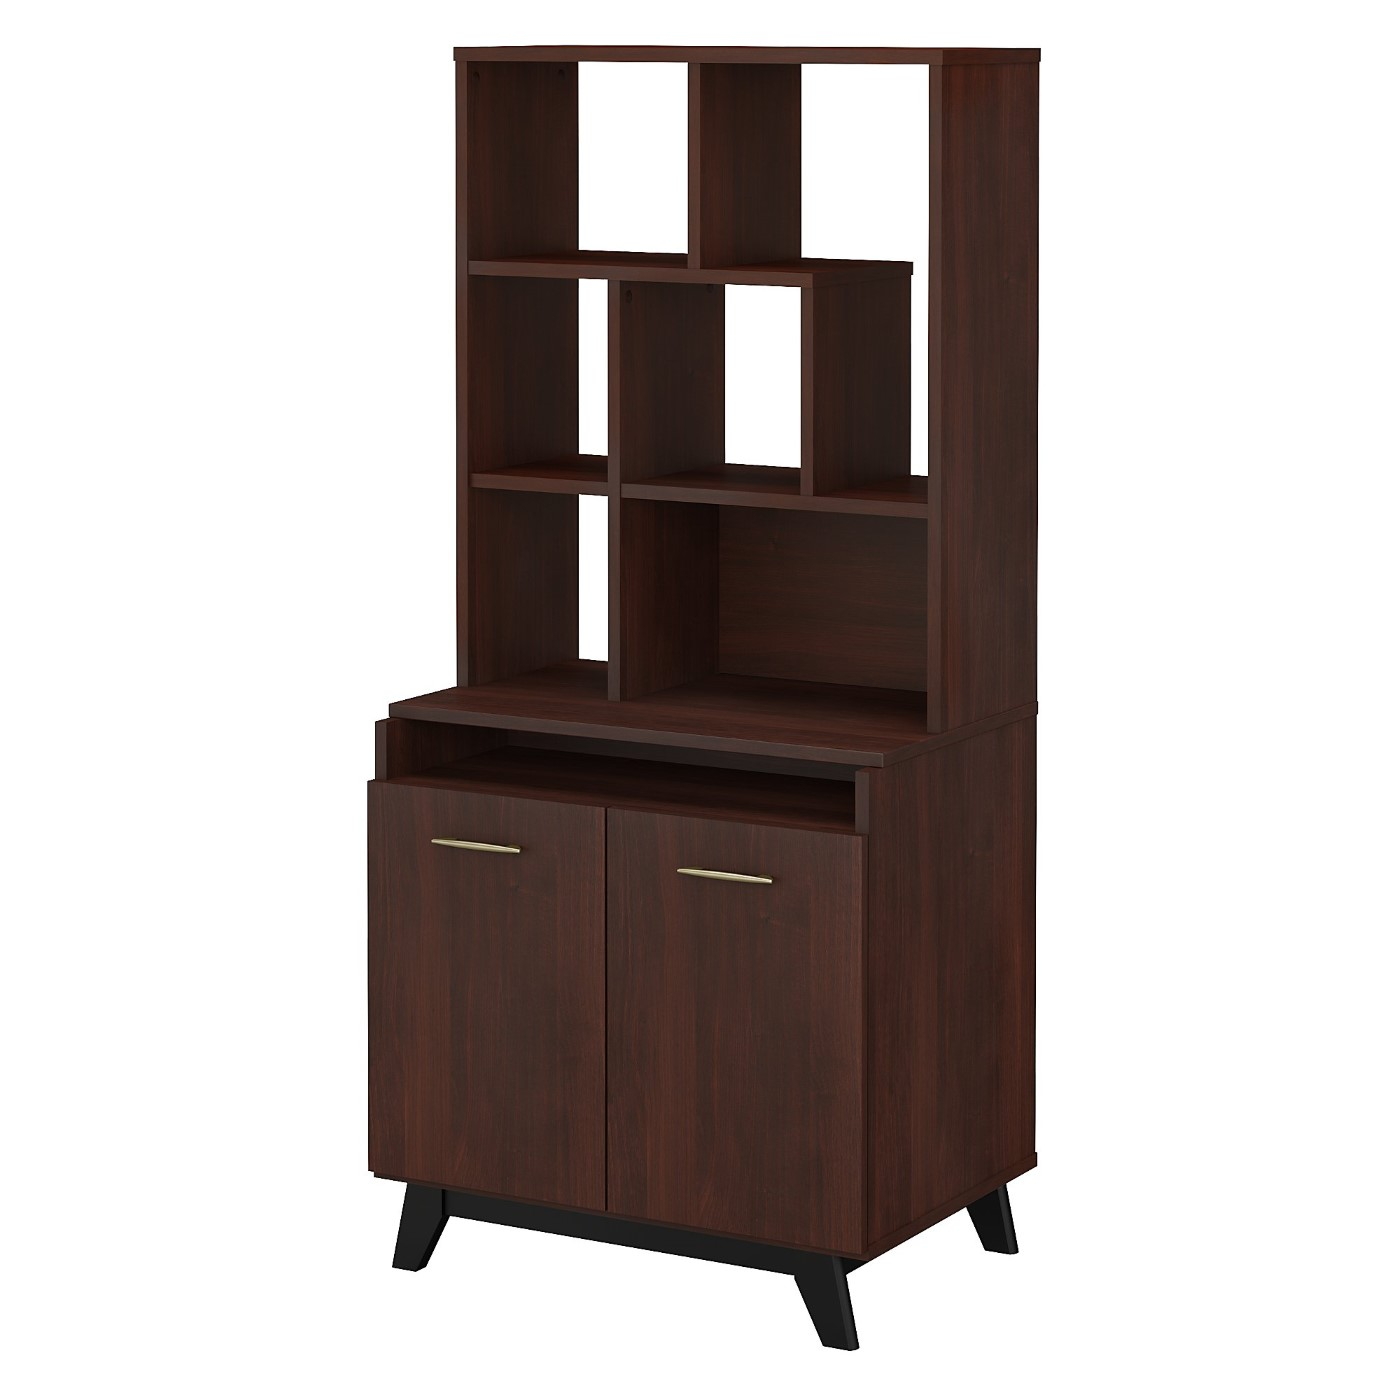 </b></font><b>The kathy ireland� Centura 2 Door Accent Storage Cabinet with Bookcase Hutch is Sustainable Eco Friendly Furniture. Includes Free Shipping! 30H x 72L x 72W</font>. <p>RATING:&#11088;&#11088;&#11088;&#11088;&#11088;</b></font></b>